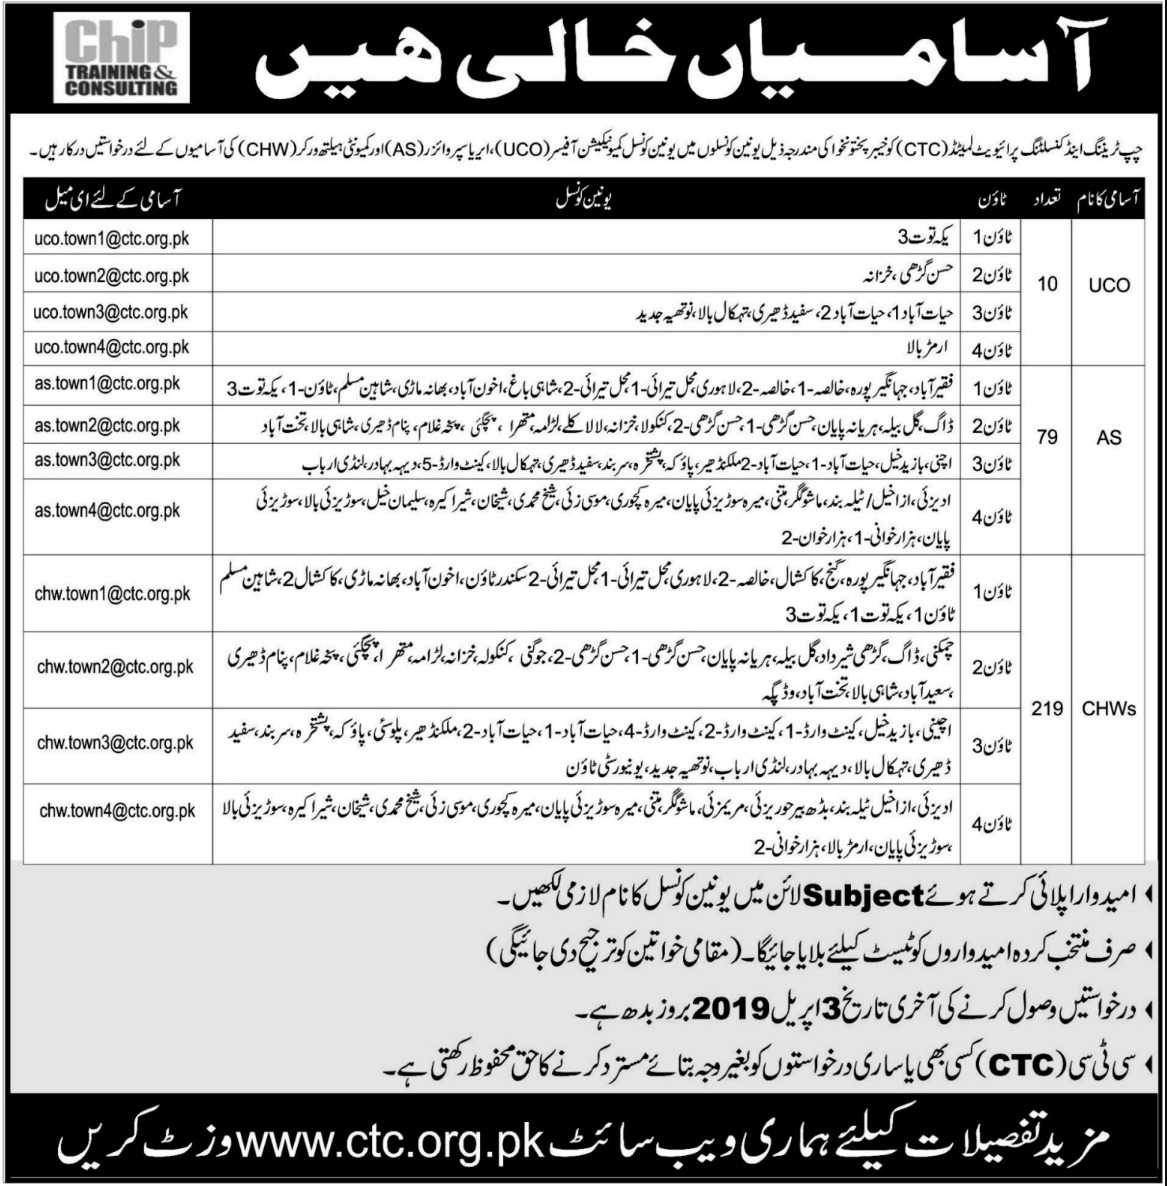 Chip Training & Consulting Pvt Ltd Jobs 2019 CTC KPK Latest